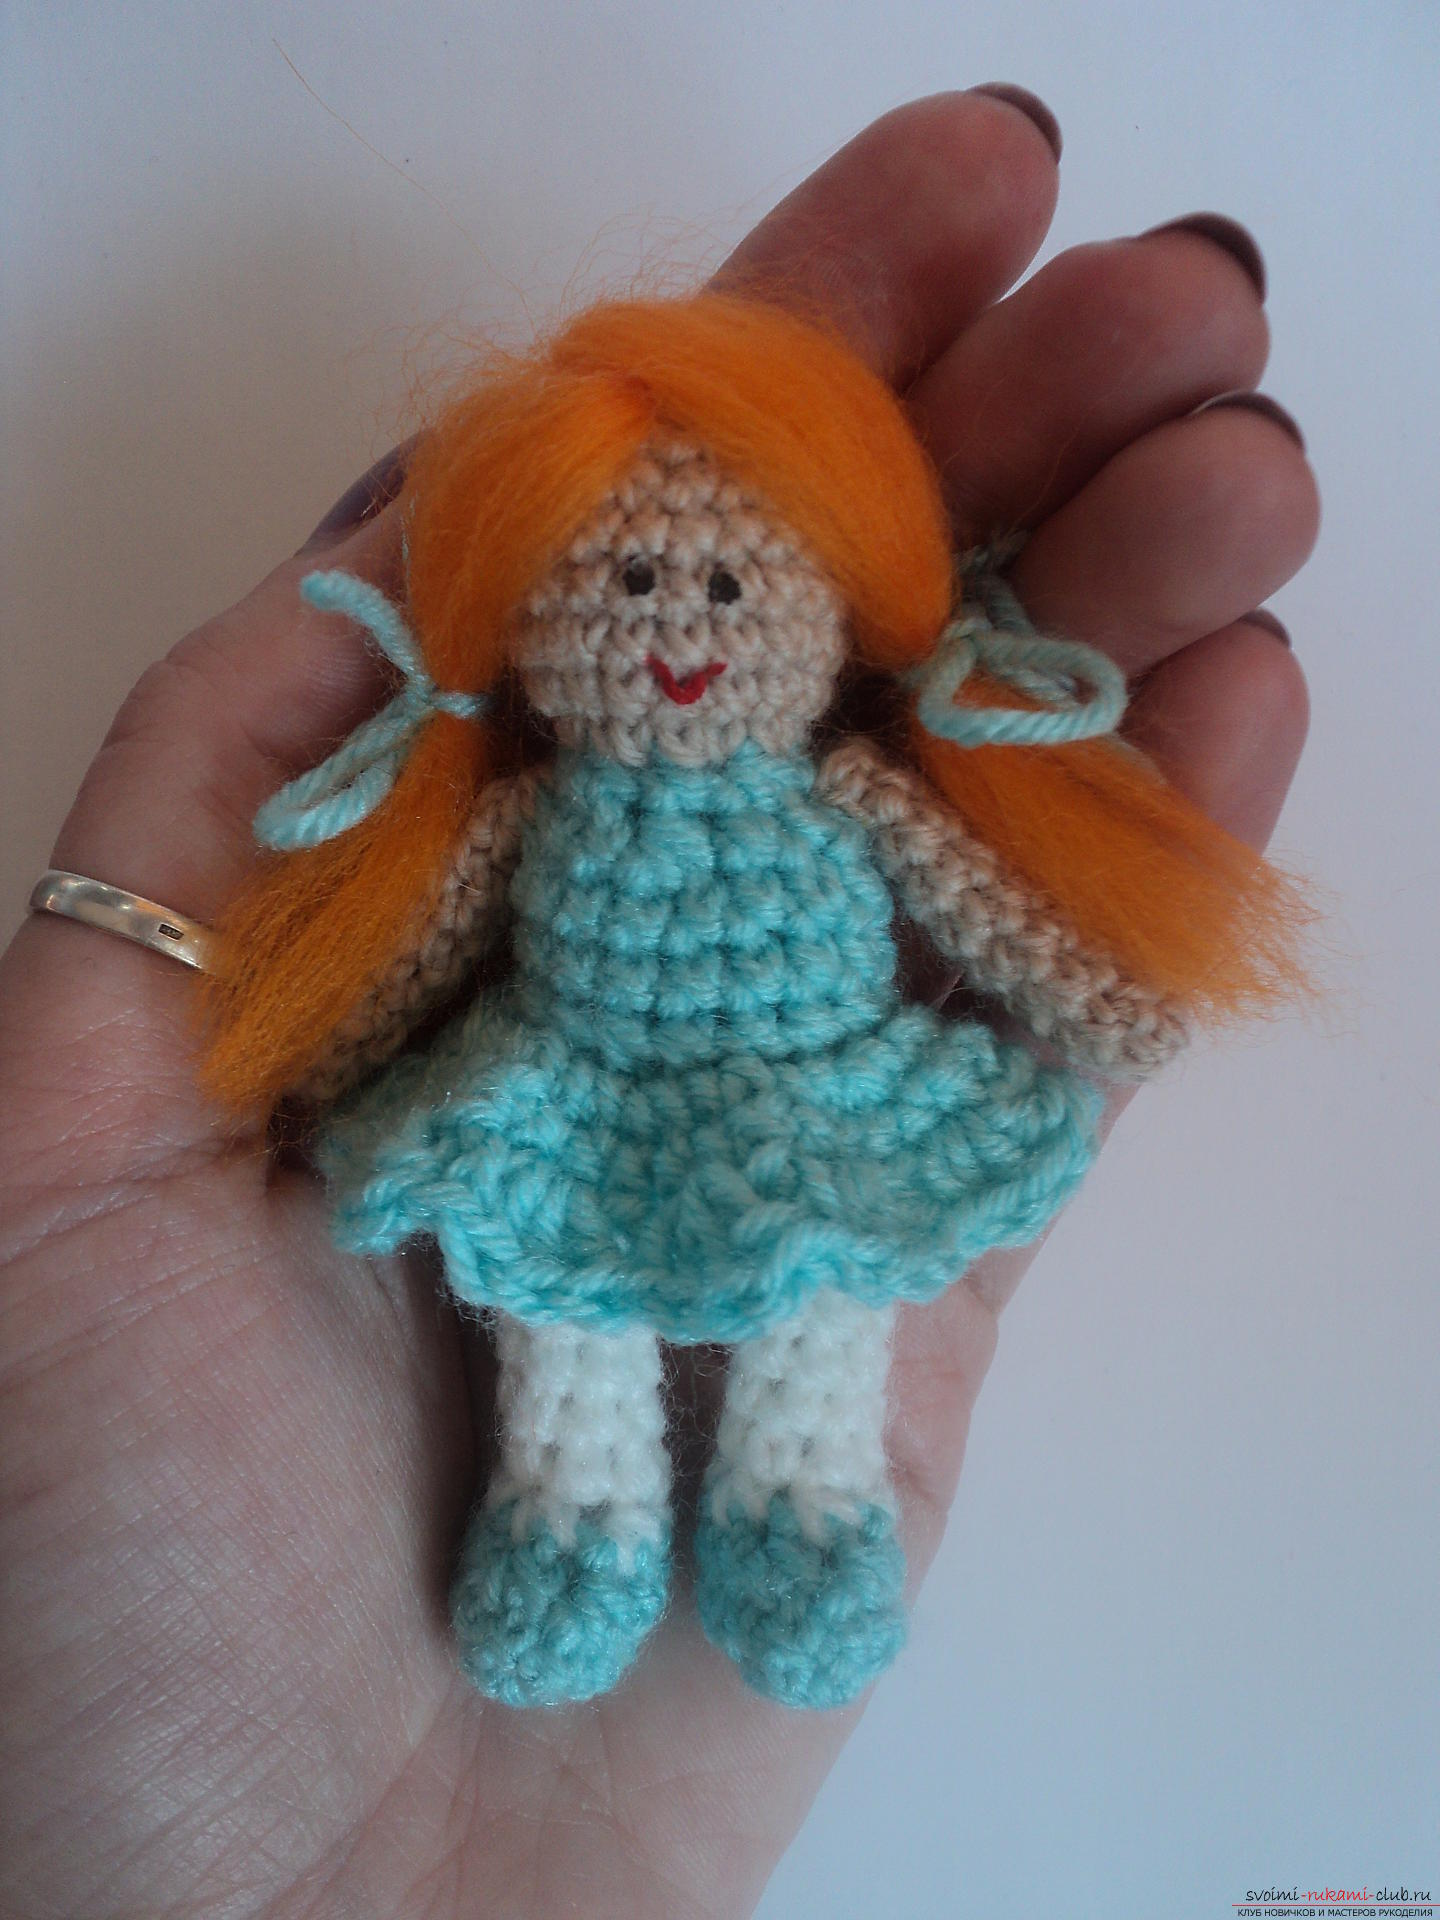 This detailed master class of crocheting toys will teach you how to tie a doll with your own hands .. Photo # 1